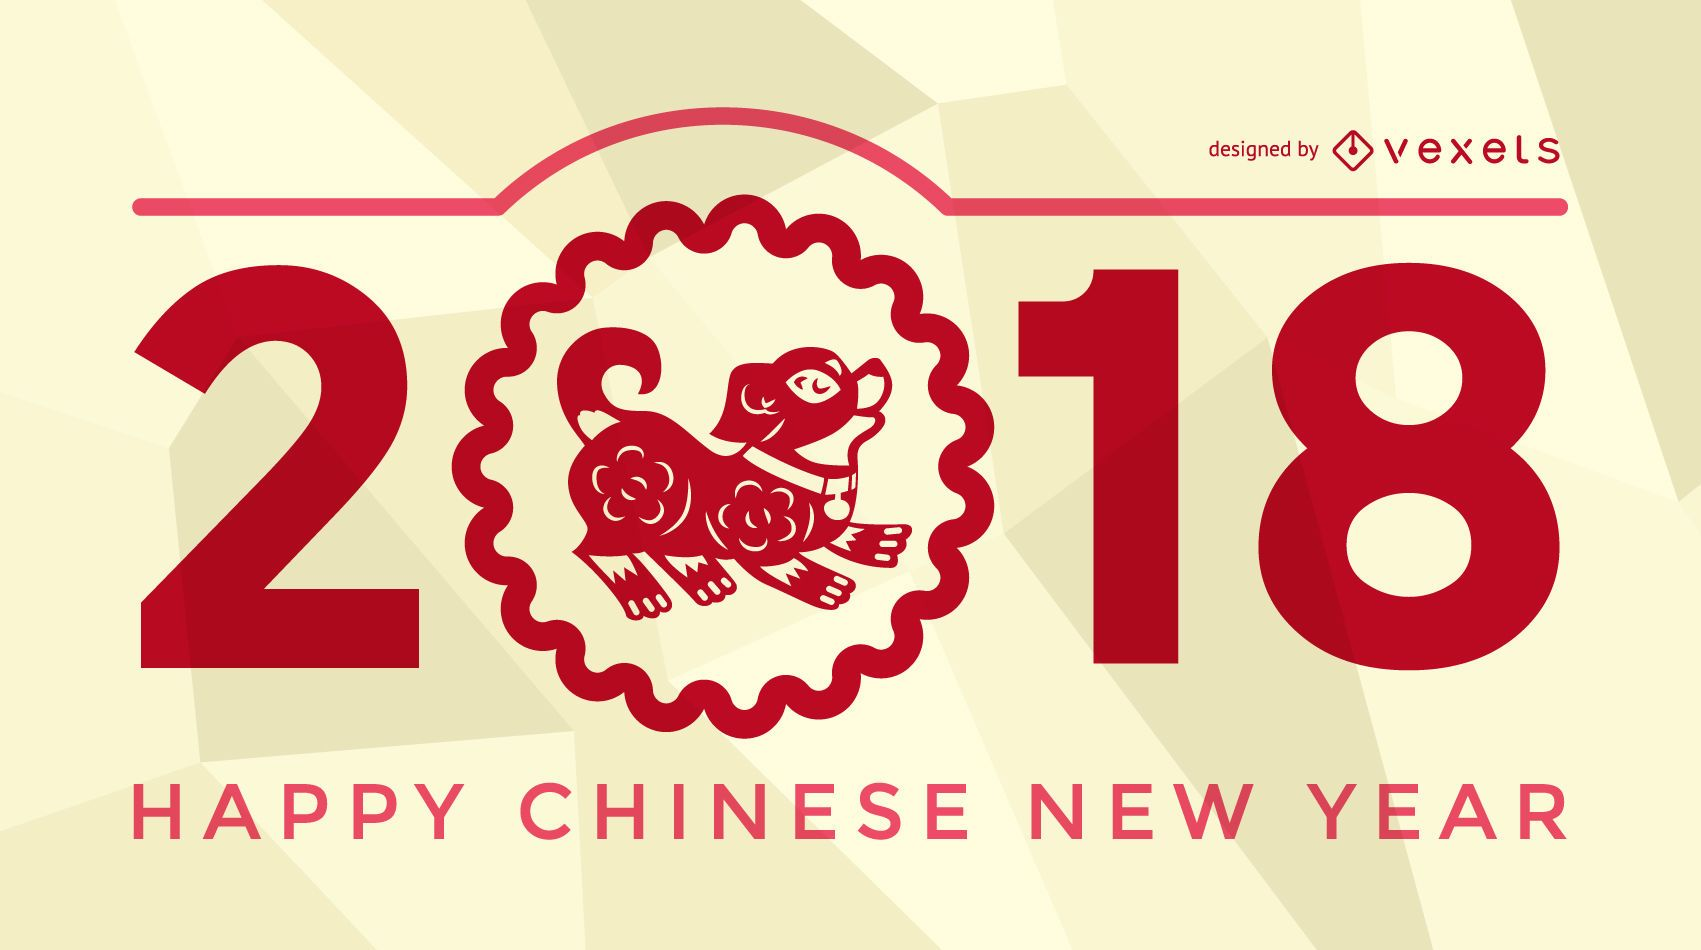 festive 2018 chinese new year poster - Chinese New Year 2018